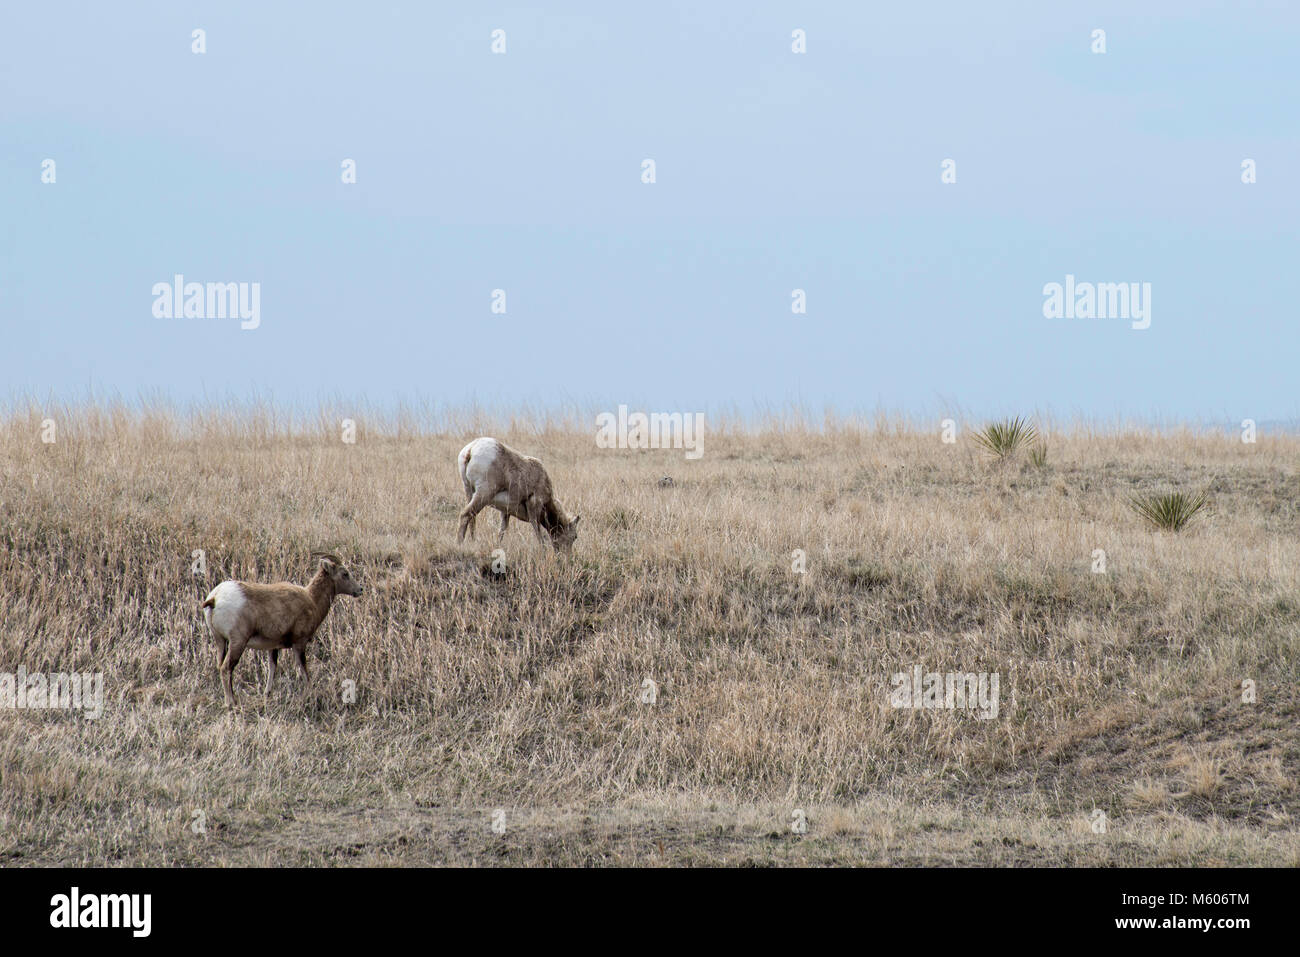 South Dakota.  Badlands National Park.  Bighorn Sheep, Ovis canadensis. Two Bighorn sheep grazing in the Badlands. Stock Photo